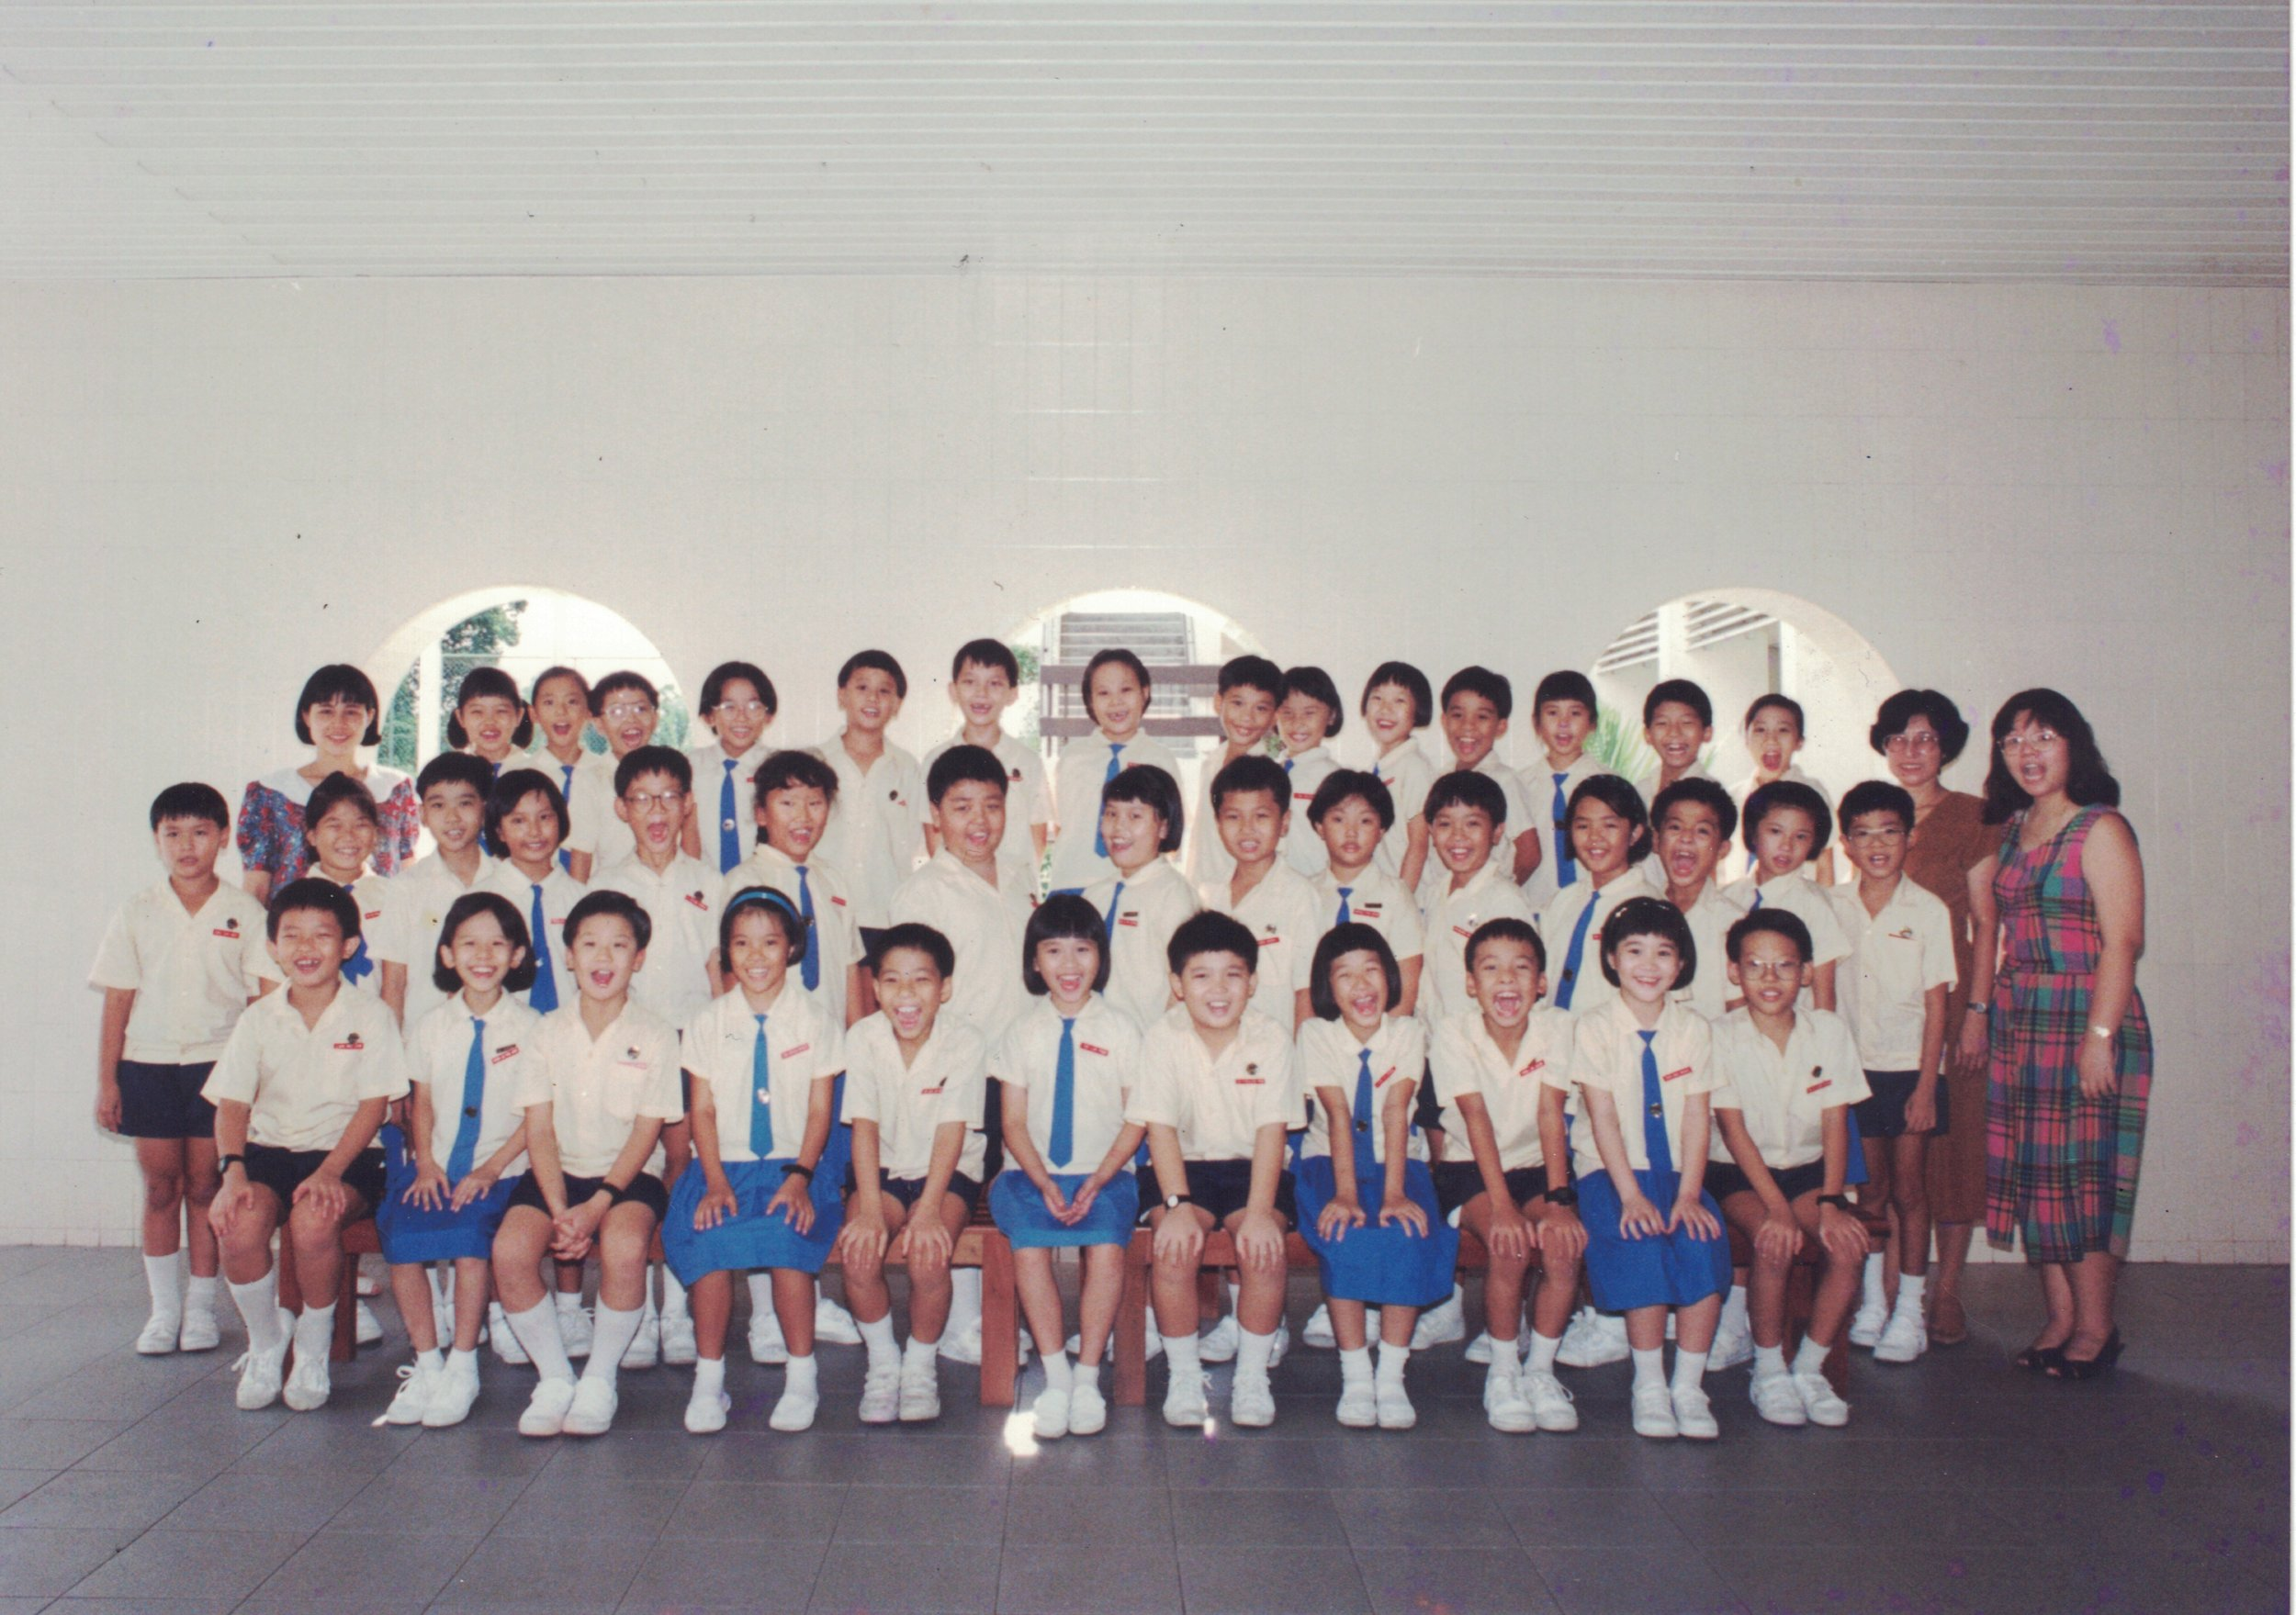 An old class photo. Ryan is in the first row, fifth from the left. Melvin, also in the same row, is the first from the right.